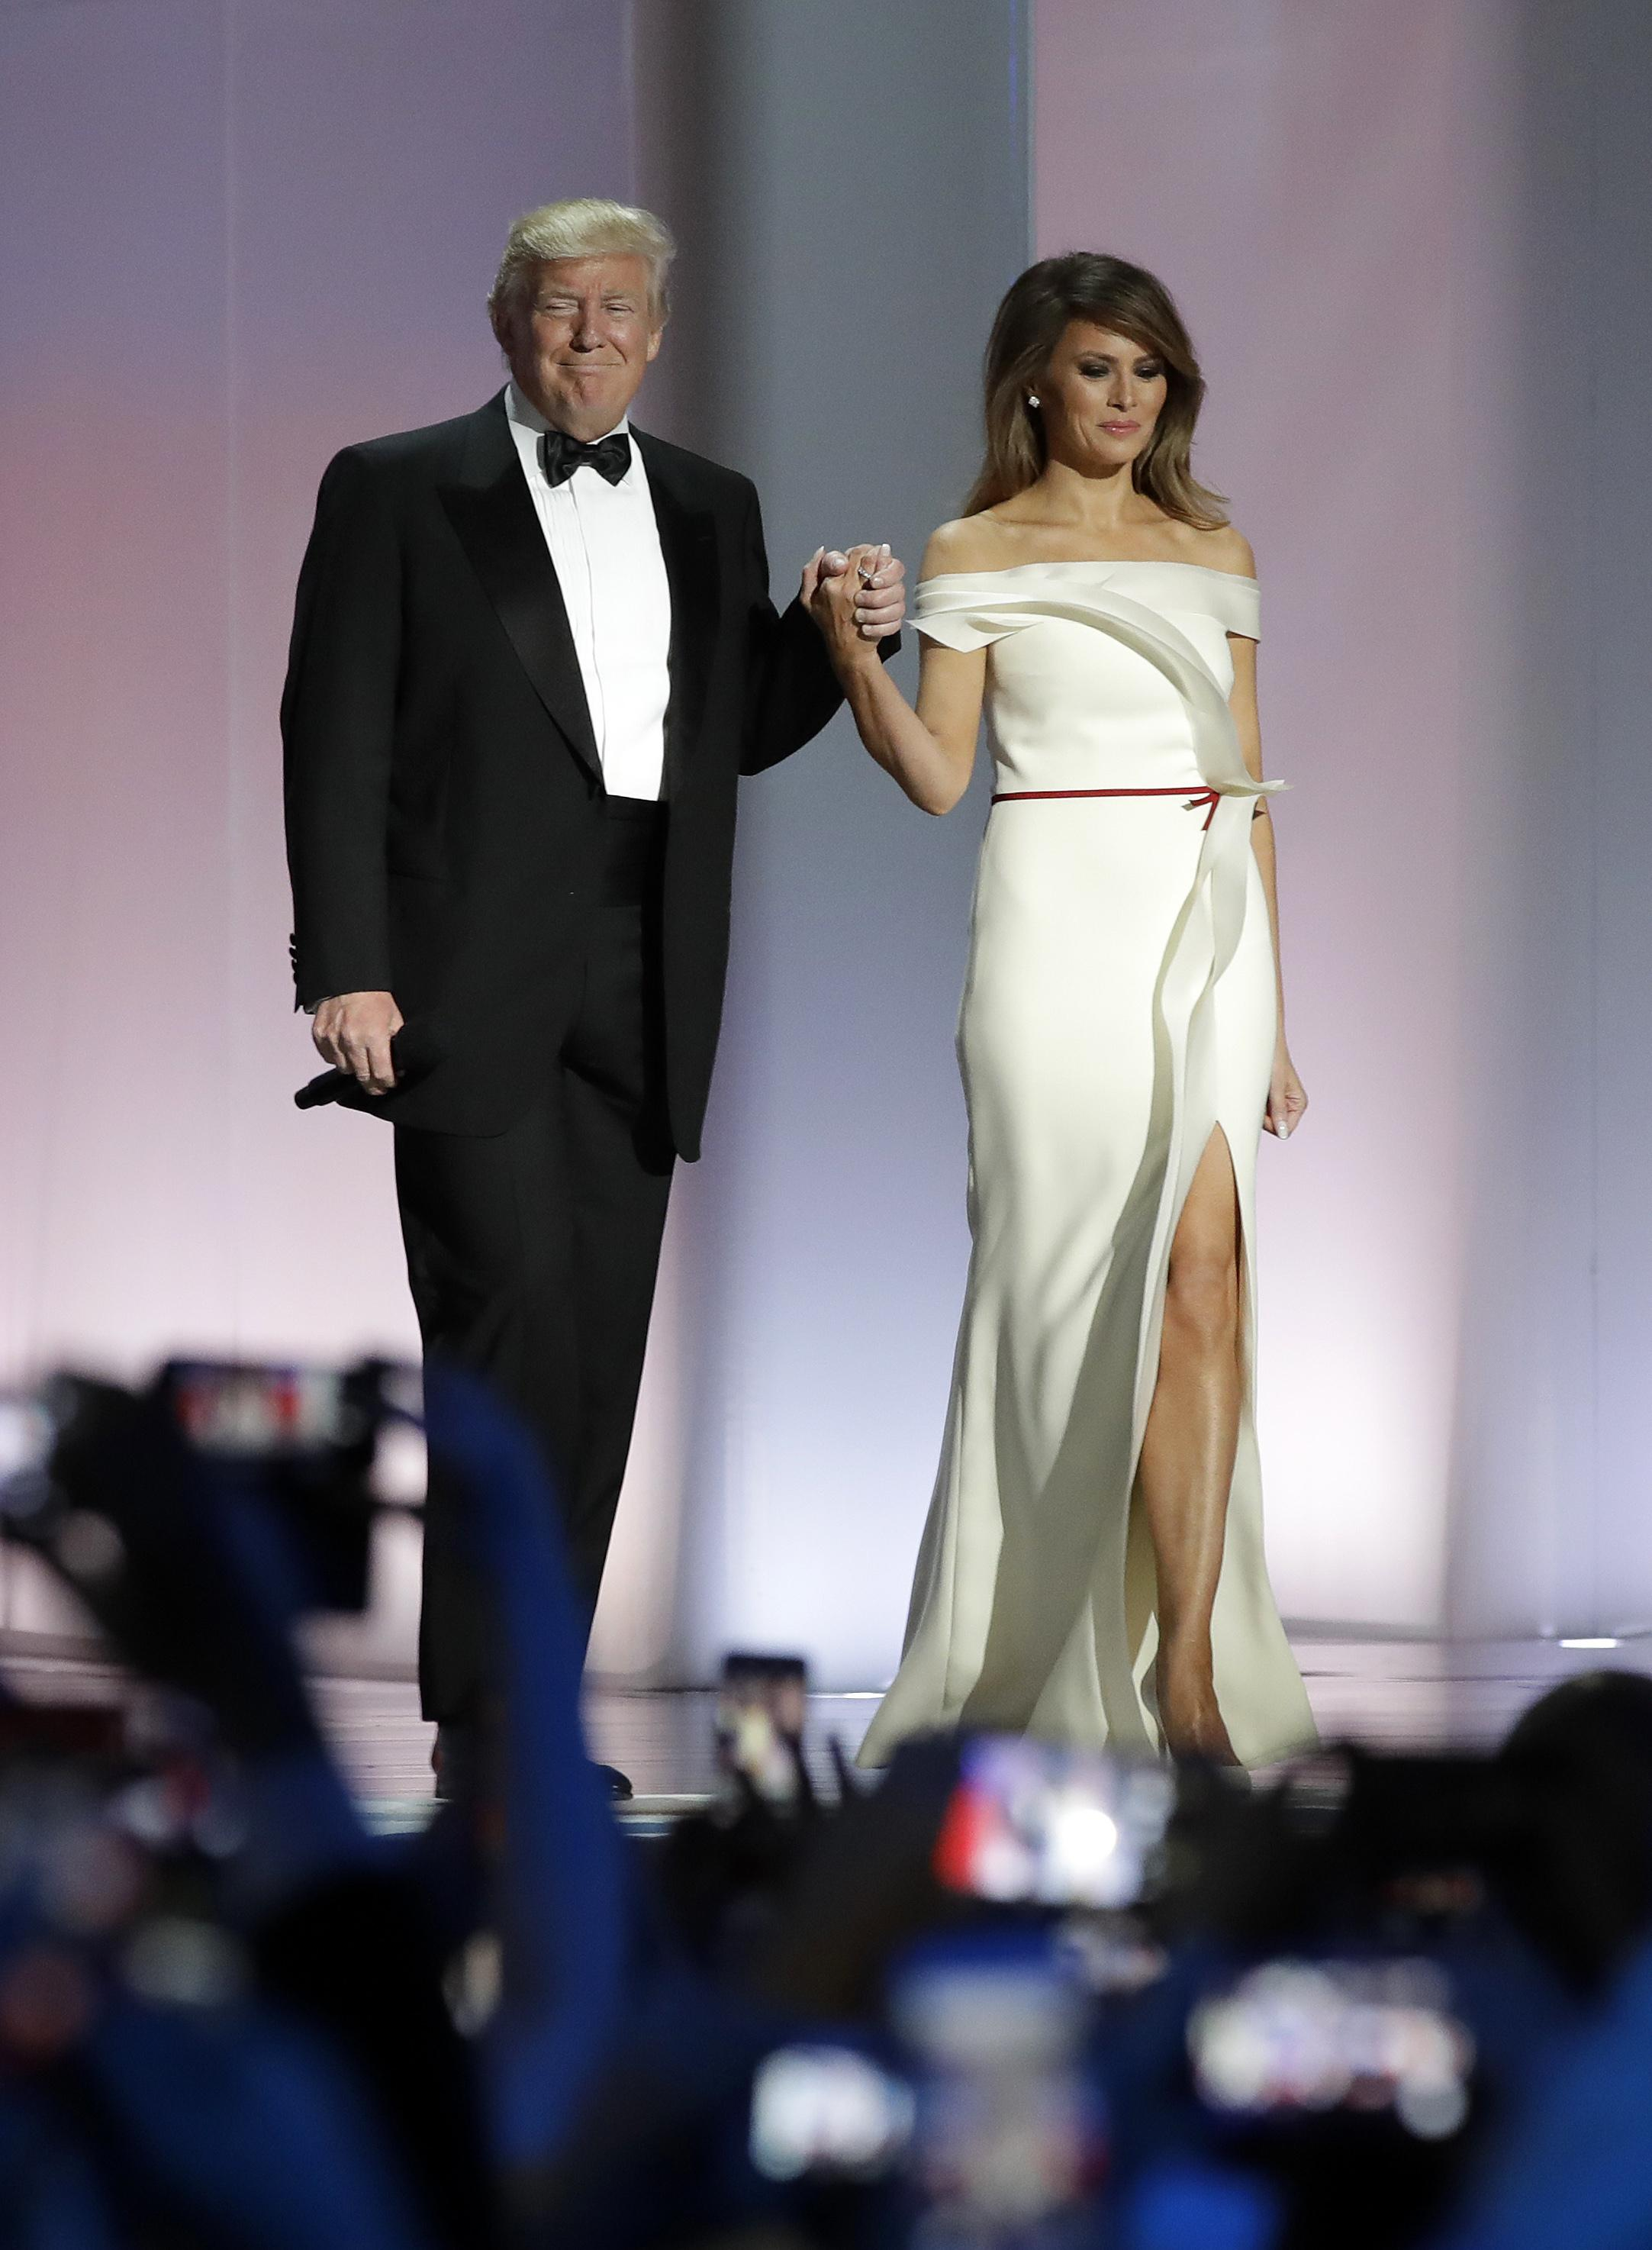 Melania Trump to donate inaugural ball gown to Smithsonian | The ...